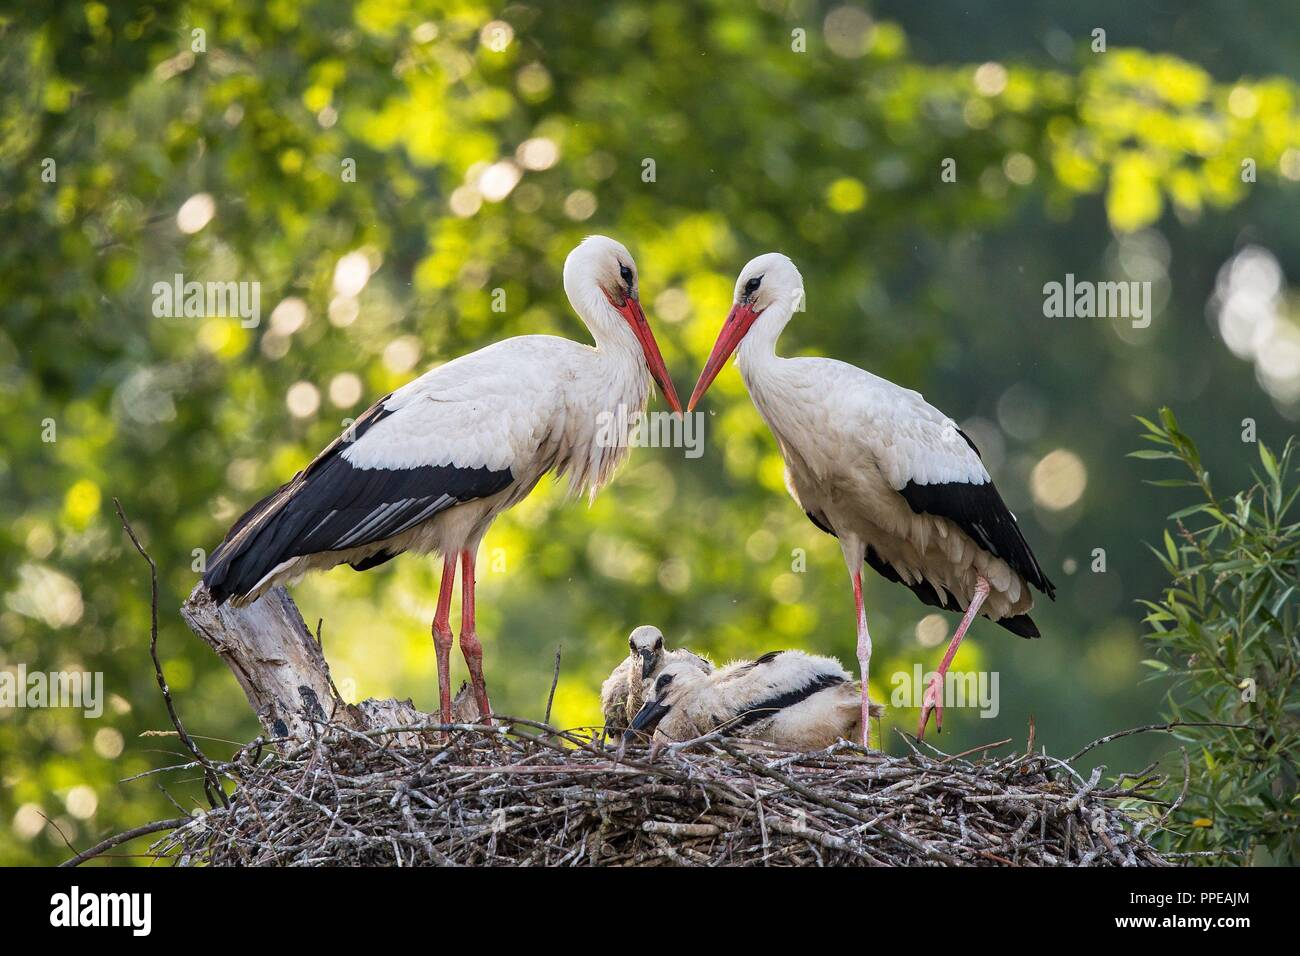 White Stork (Ciconia ciconia) breeding pair standing on nest with two chicks, Baden-Wuerttemberg, Germany   usage worldwide Stock Photo